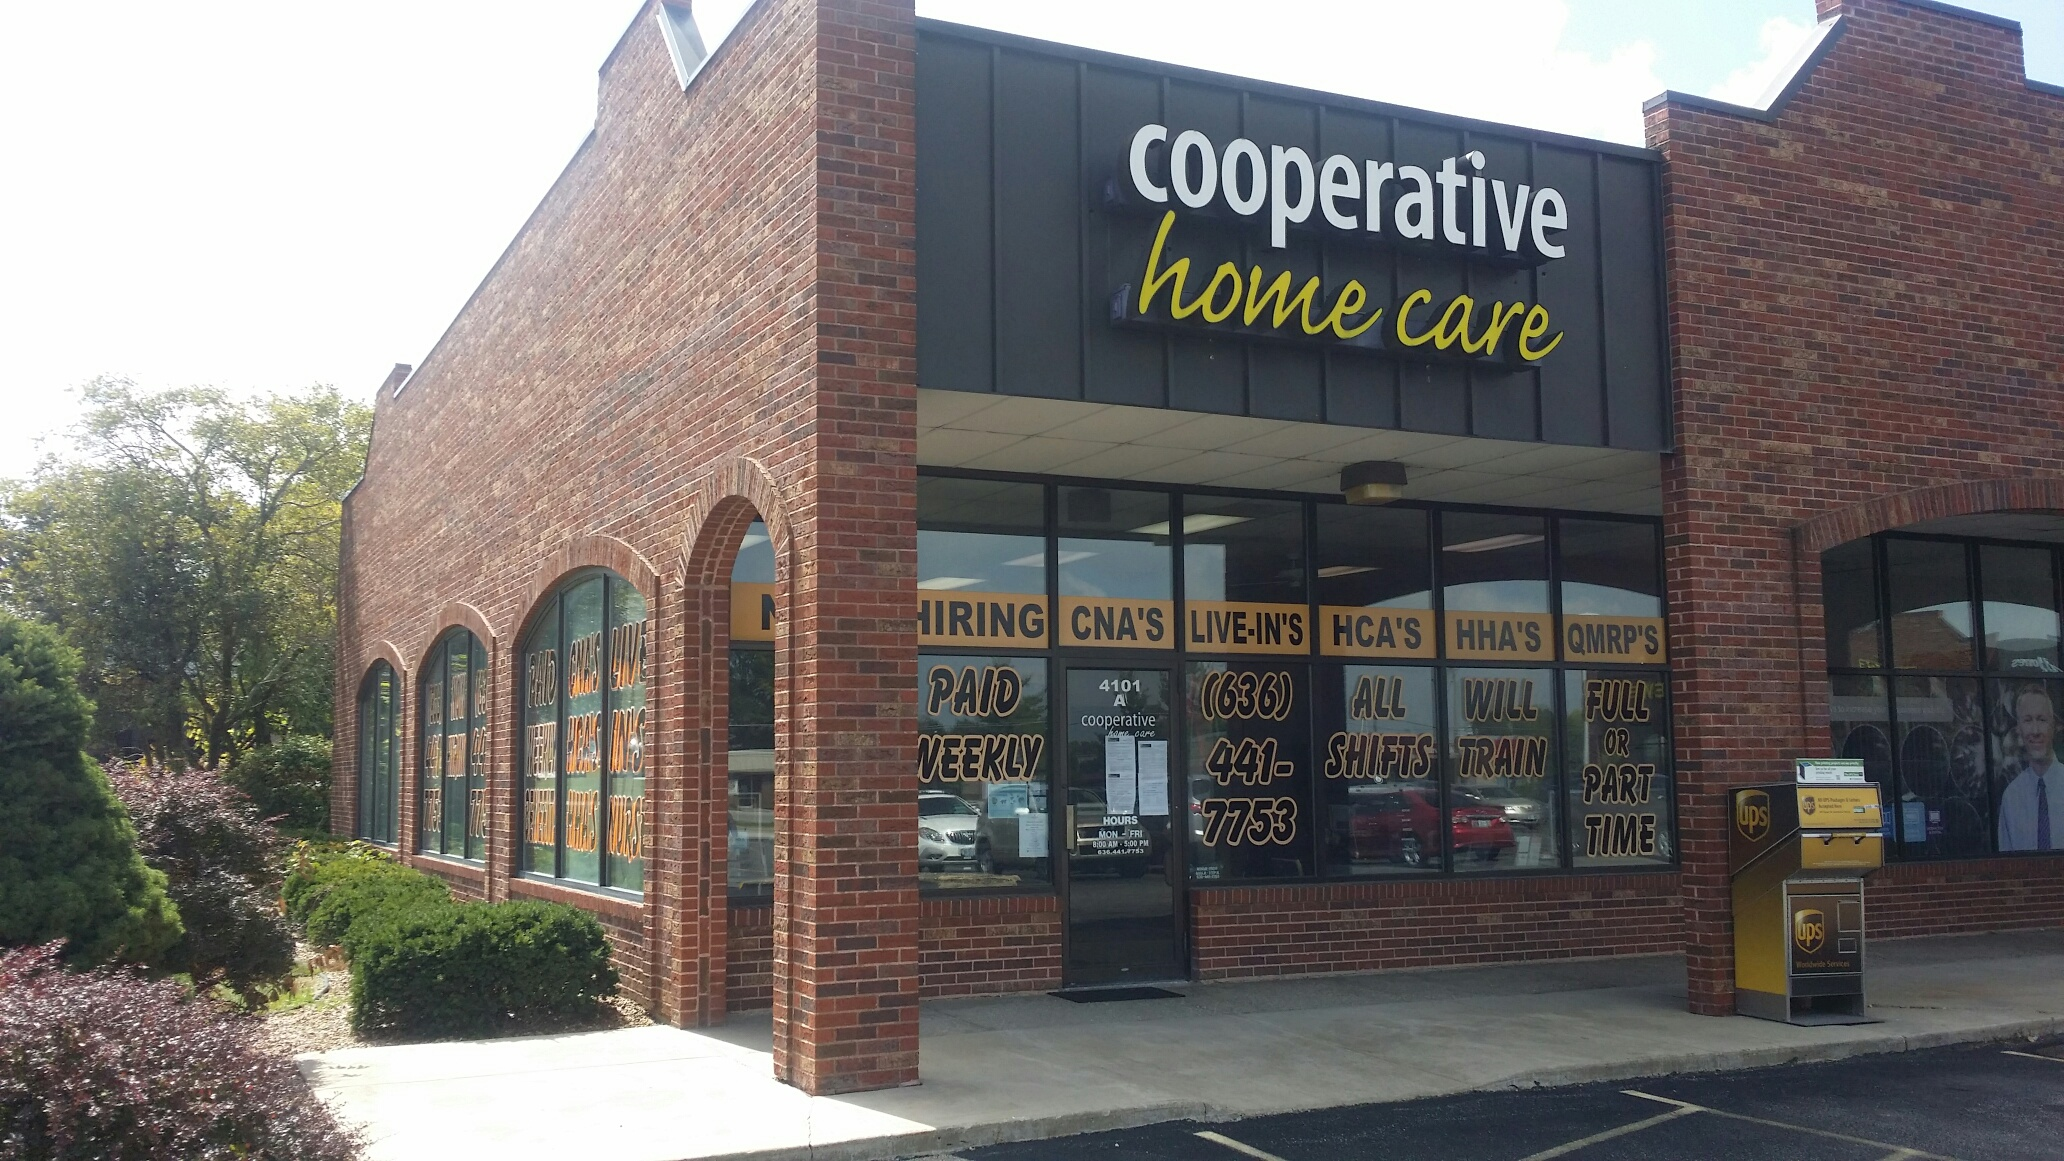 Cooperative Home Care image 1